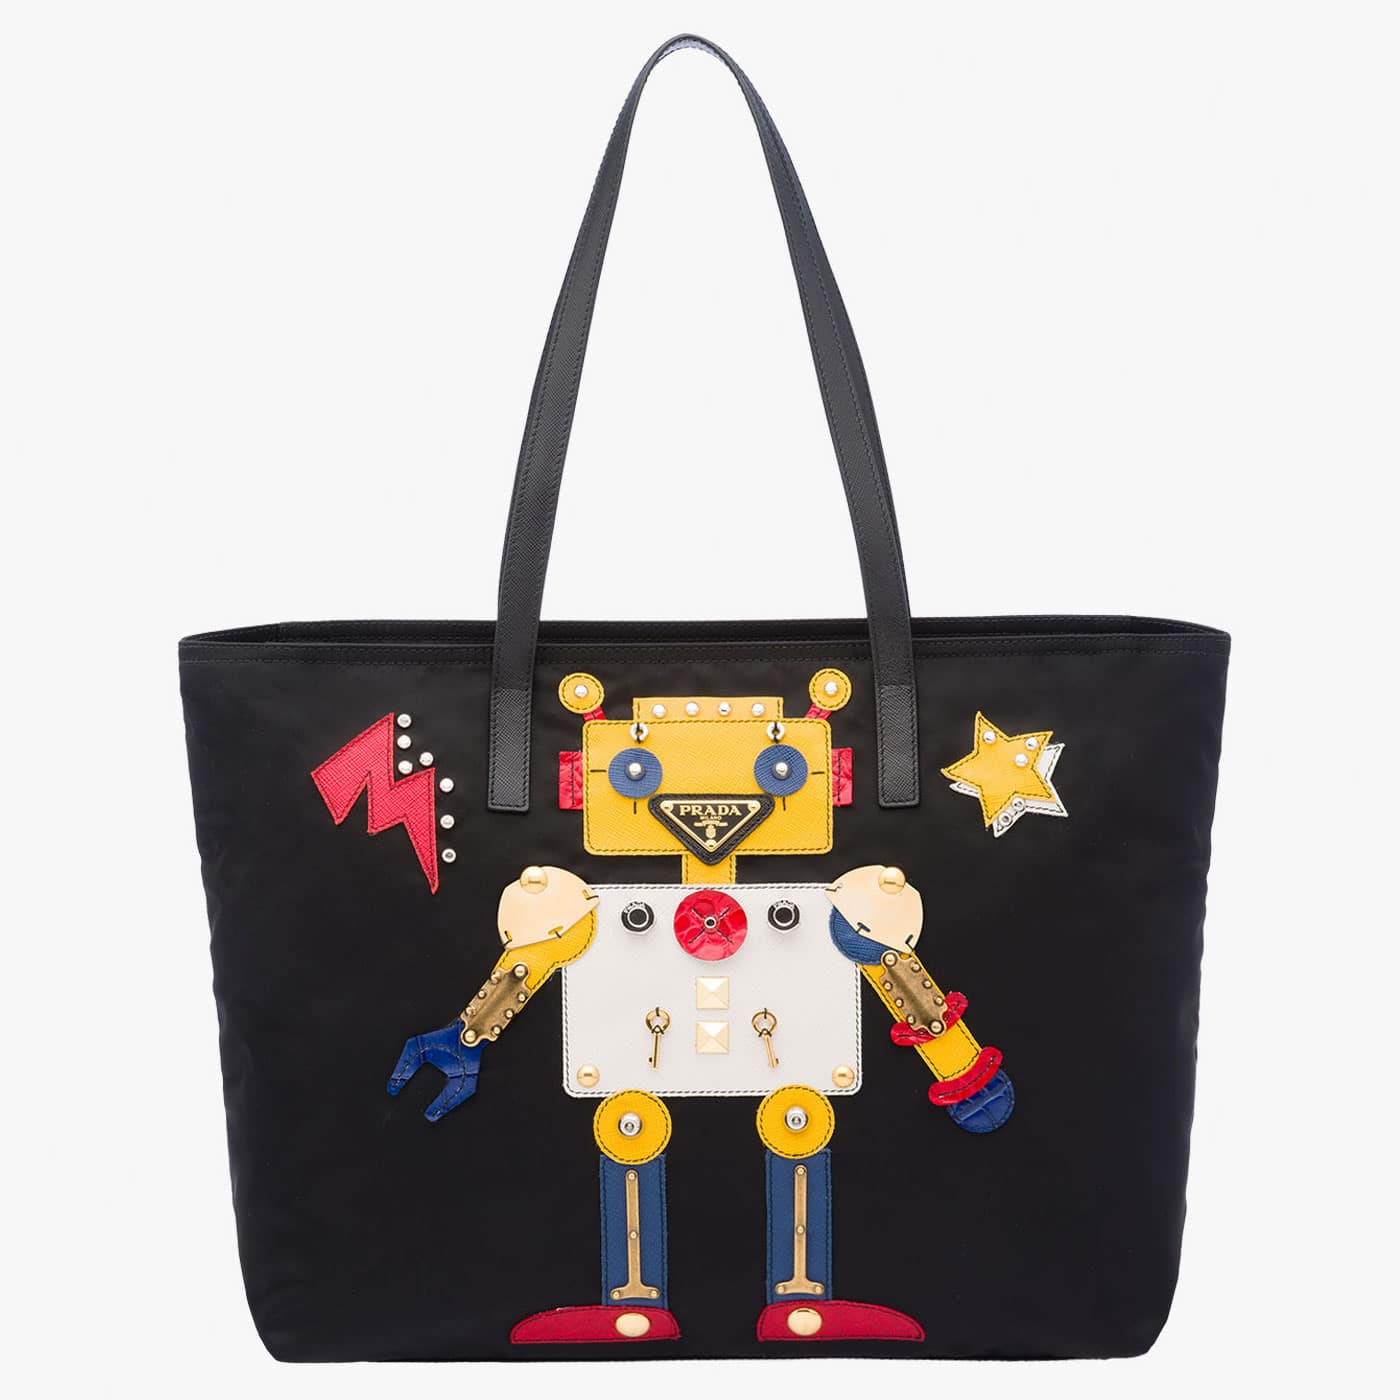 Prada Limited Edition Robot Collection Spotted Fashion